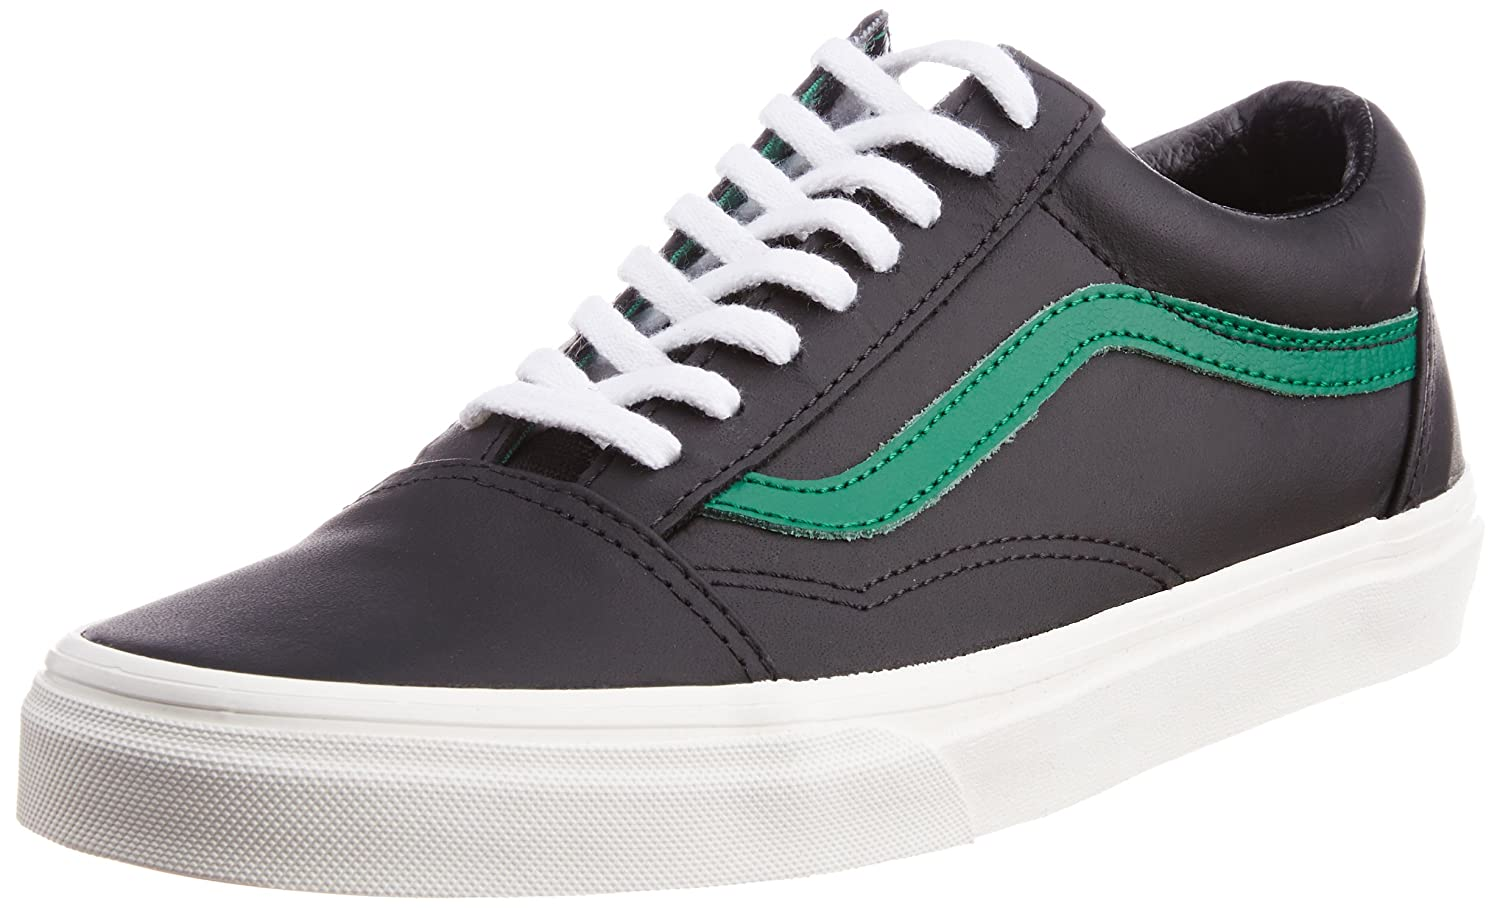 5a545d275af Vans Men s Old Skool Matte Leather Black and Verdant Green Canvas Sneakers  - 8 UK  Buy Online at Low Prices in India - Amazon.in